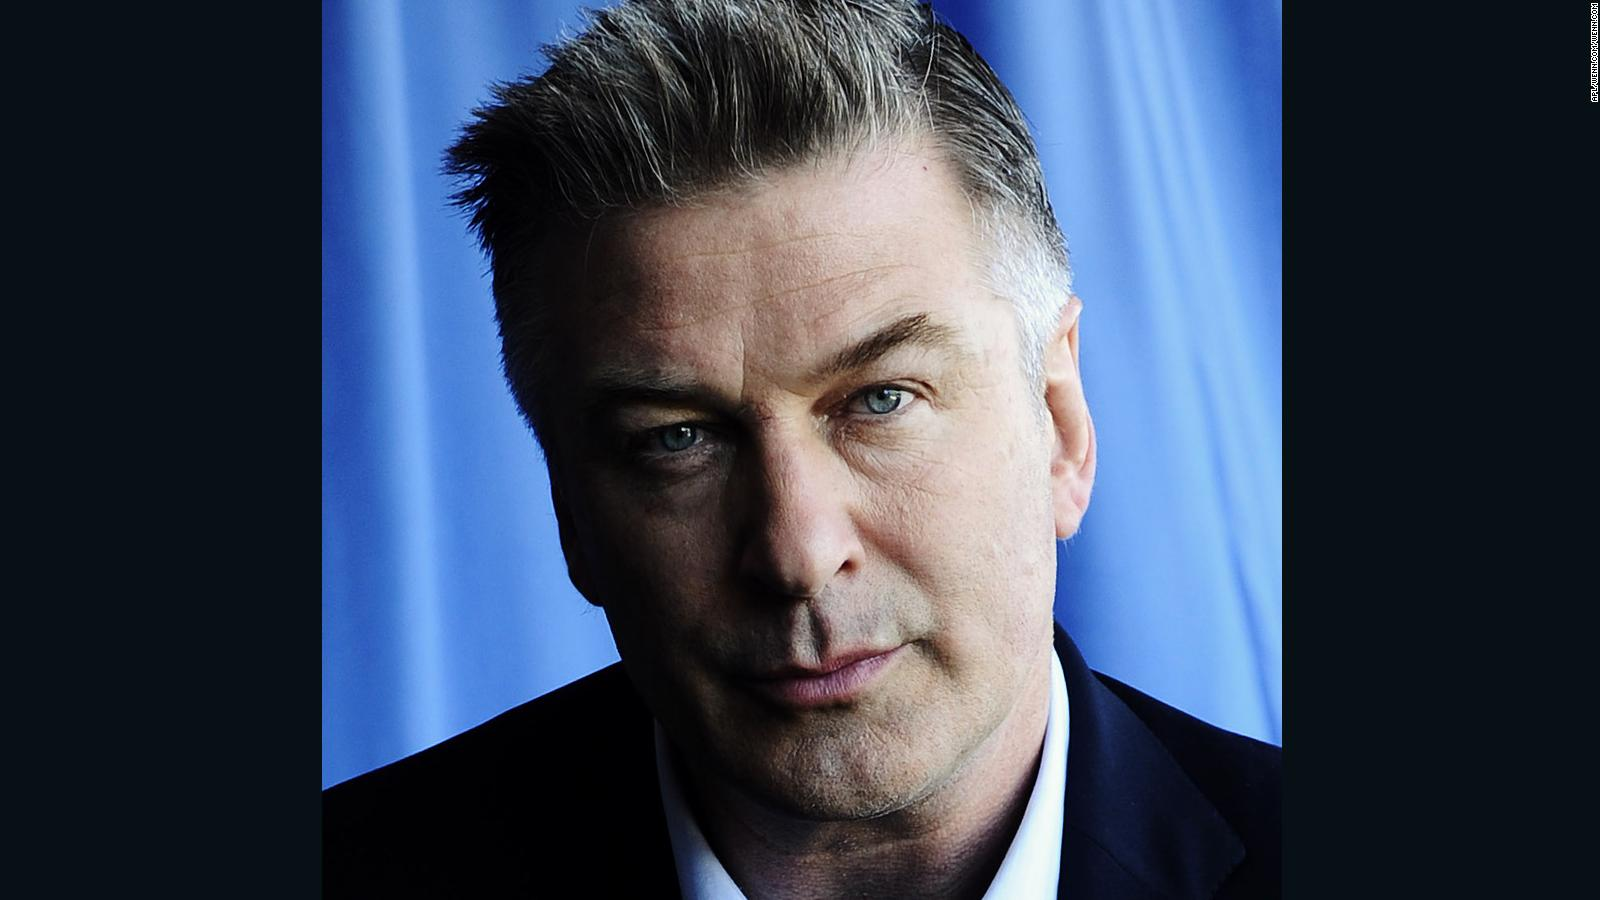 What You Should Know About Actor Alec Baldwin